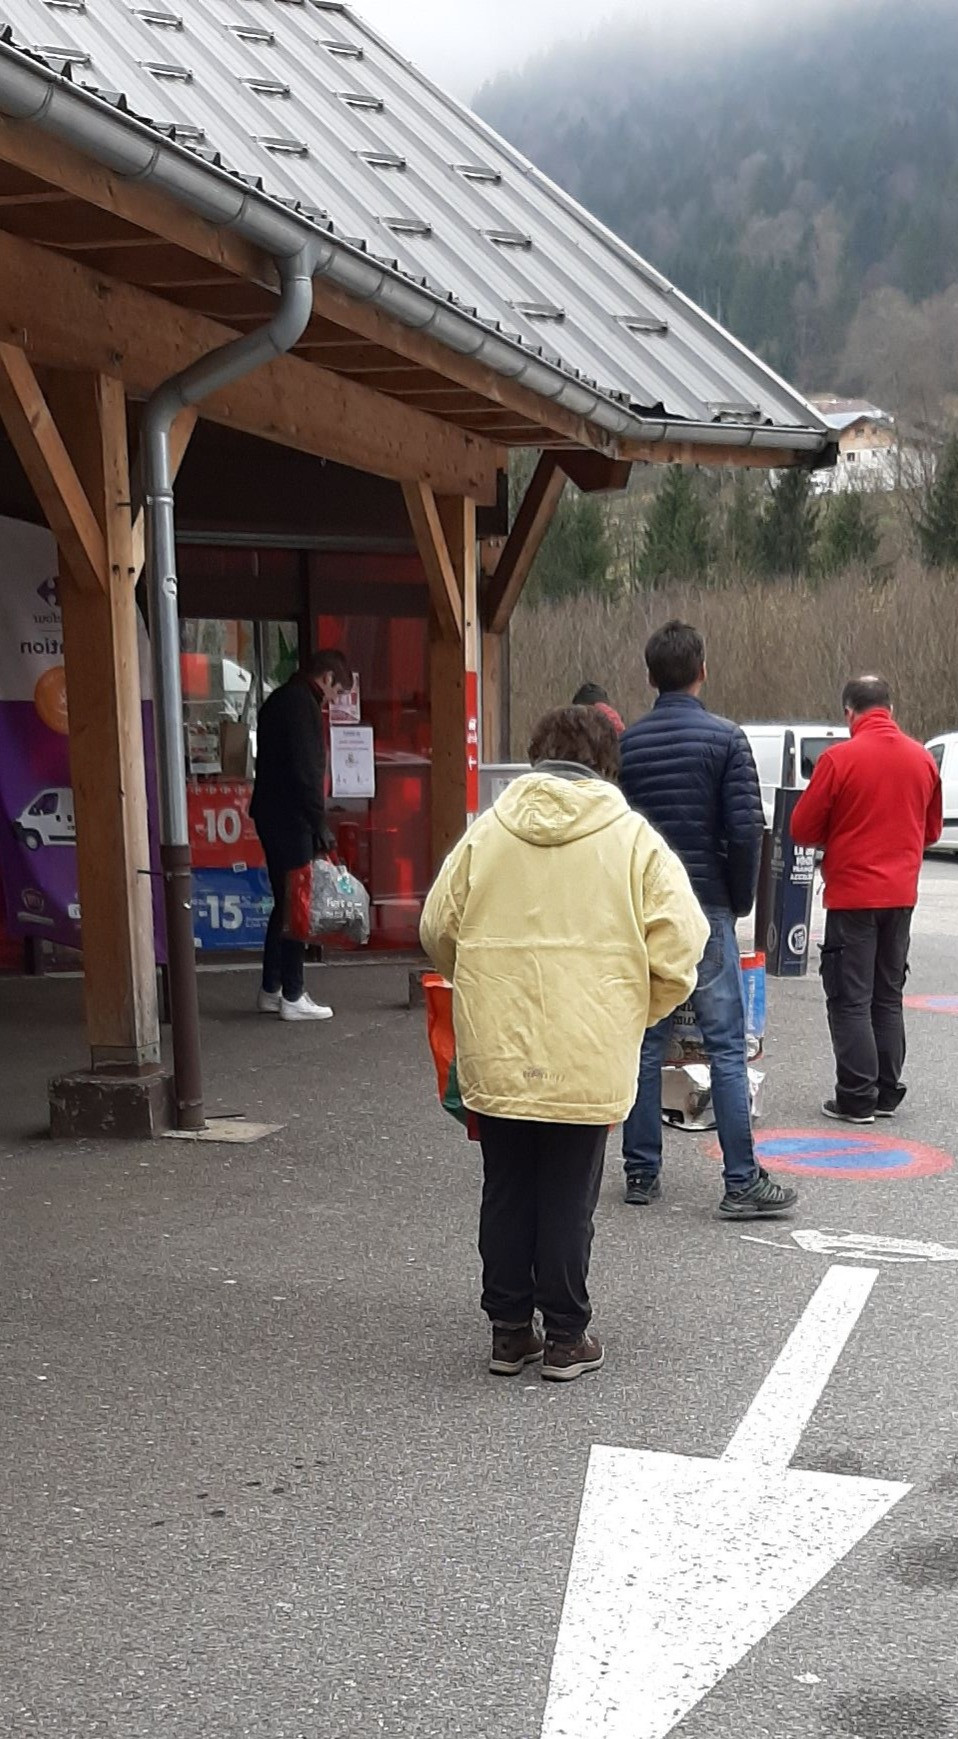 Queuing and social distancing waiting to enter the supermarket